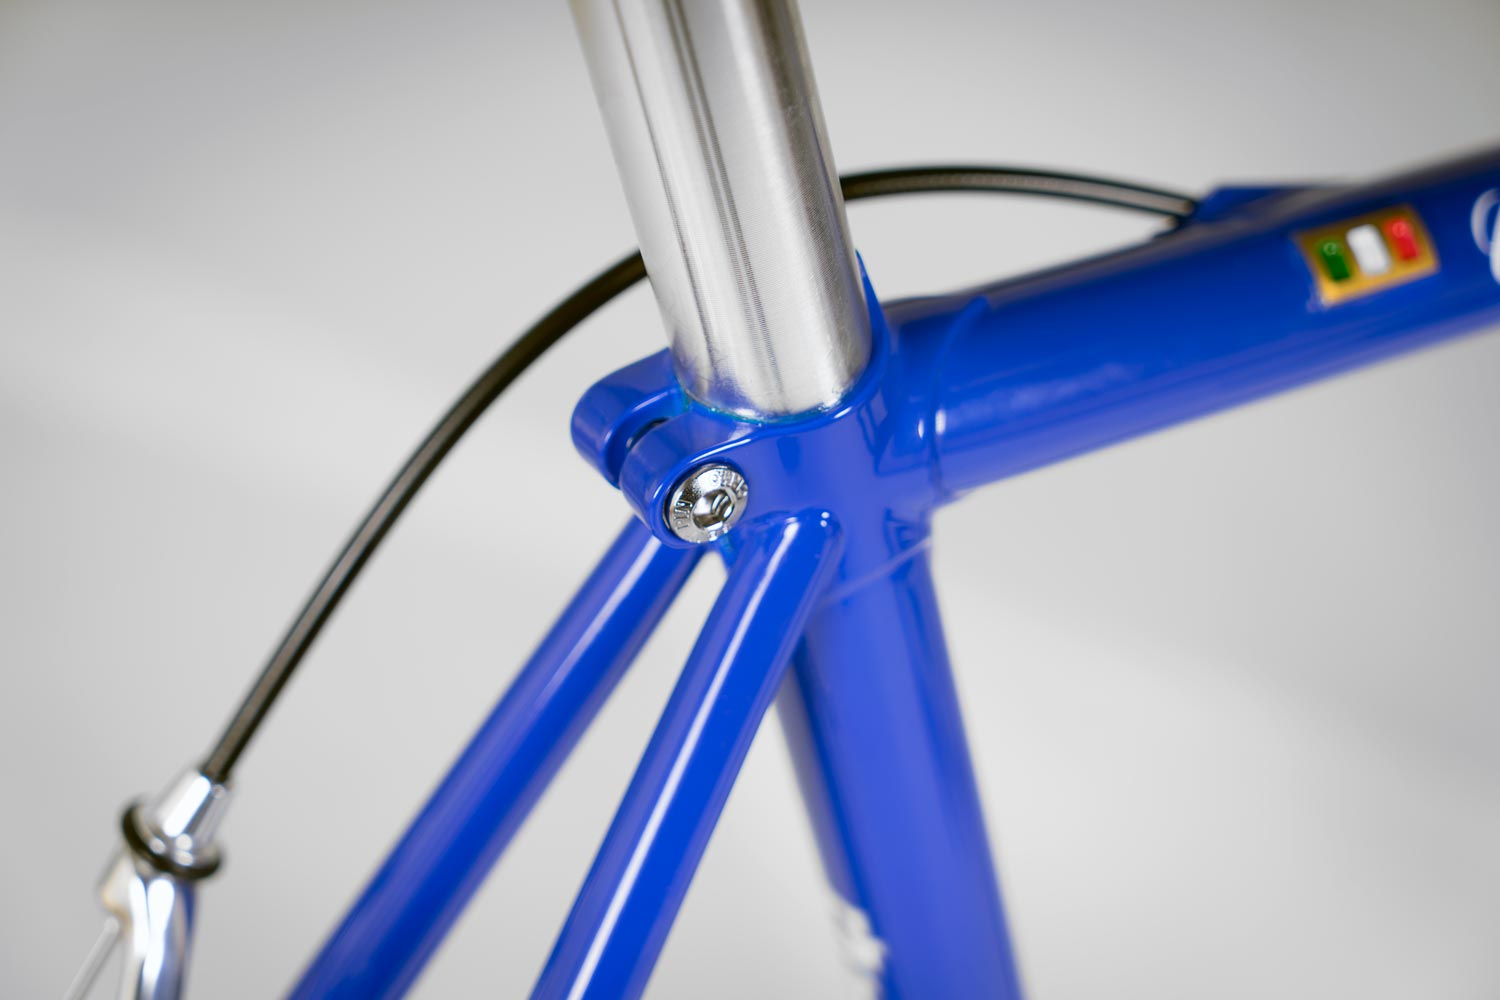 gios-compact-pro-detail-10